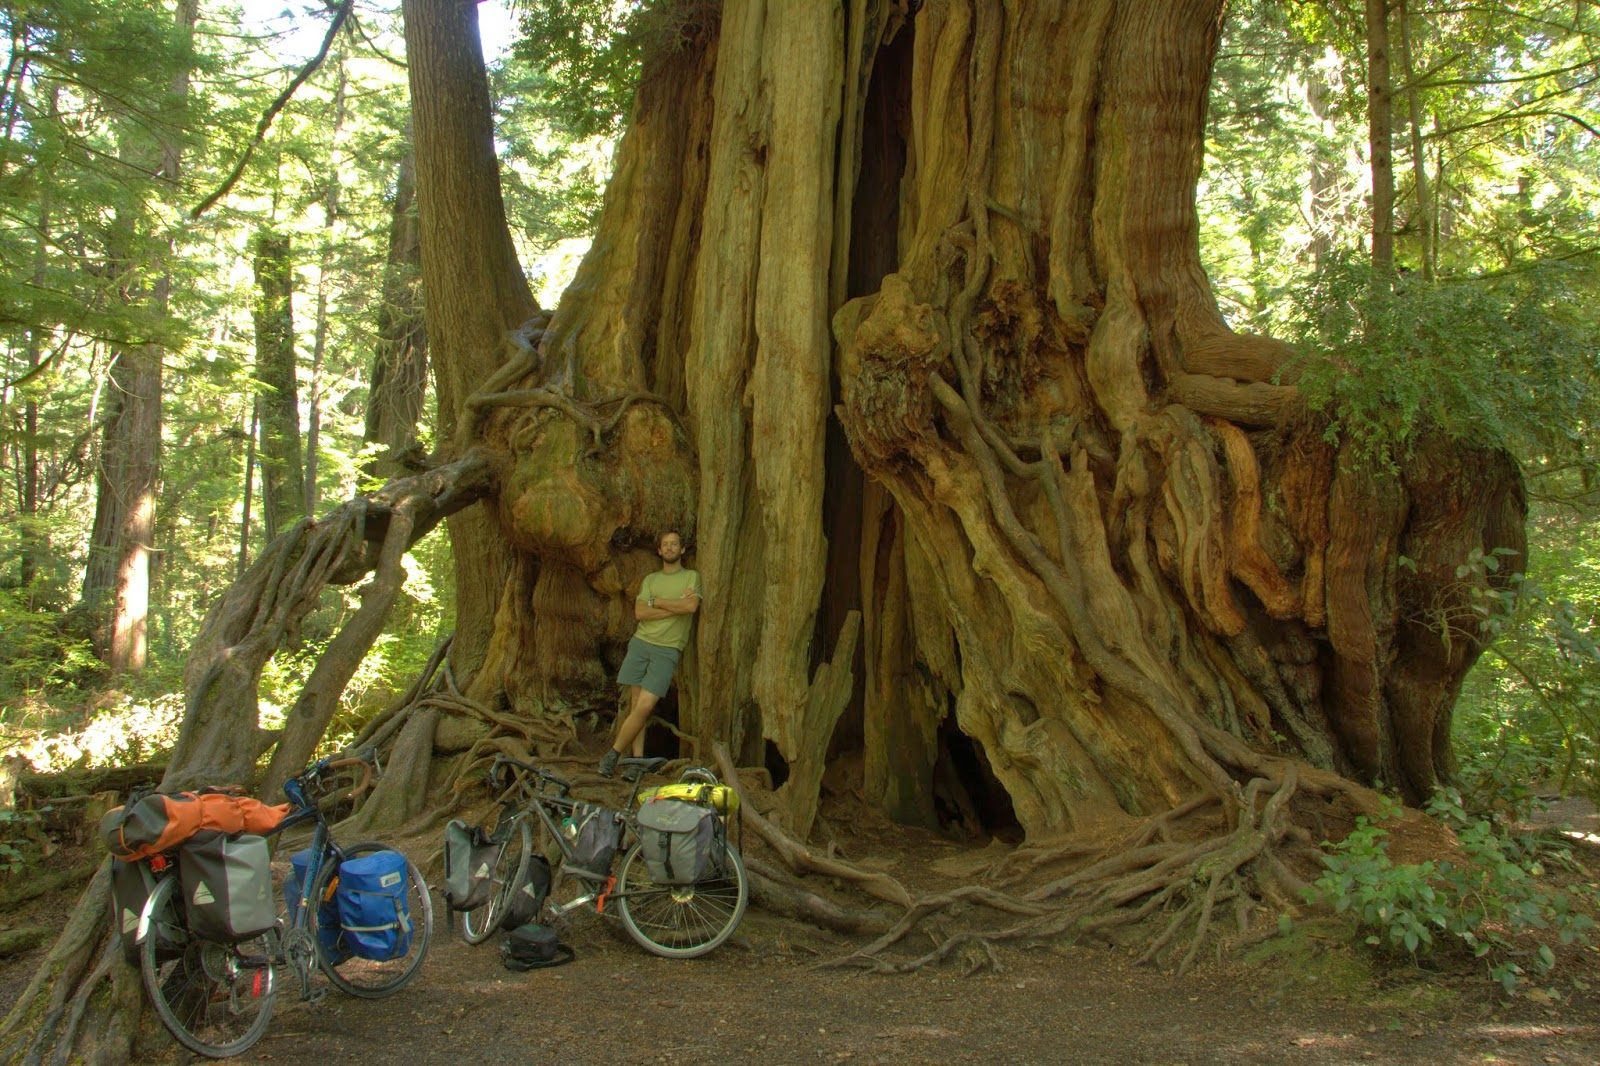 Cycling 11,000km on the big tree tour from Vancouver to Panama (2012-2013)